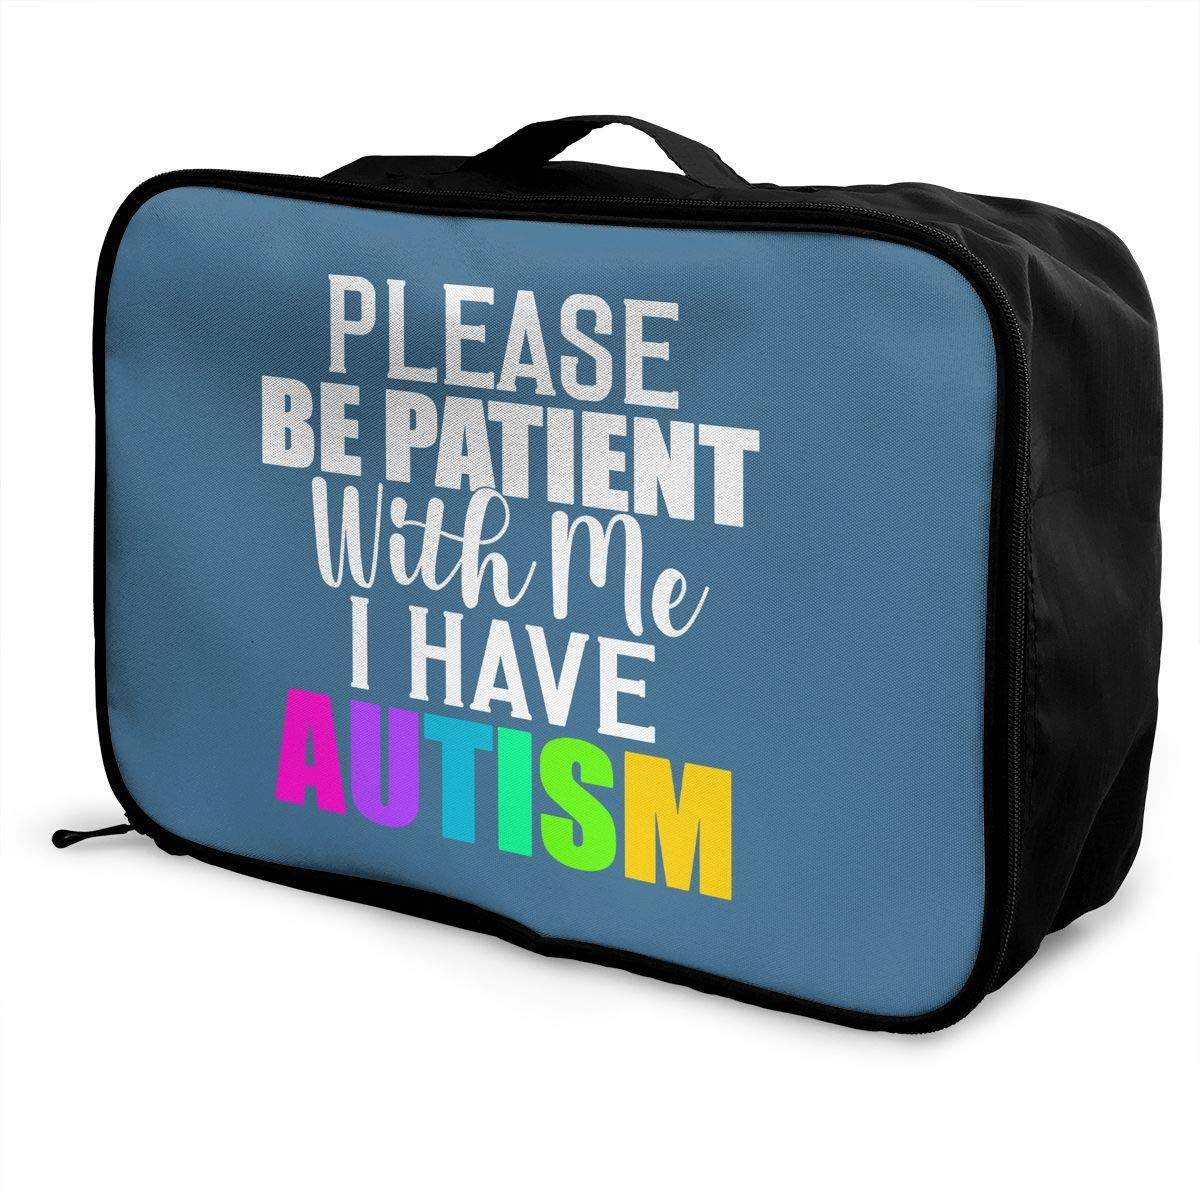 Be Patient With Me I Have Autism Travel Lightweight Storage Luggage Case Portable Travel Duffel Bag